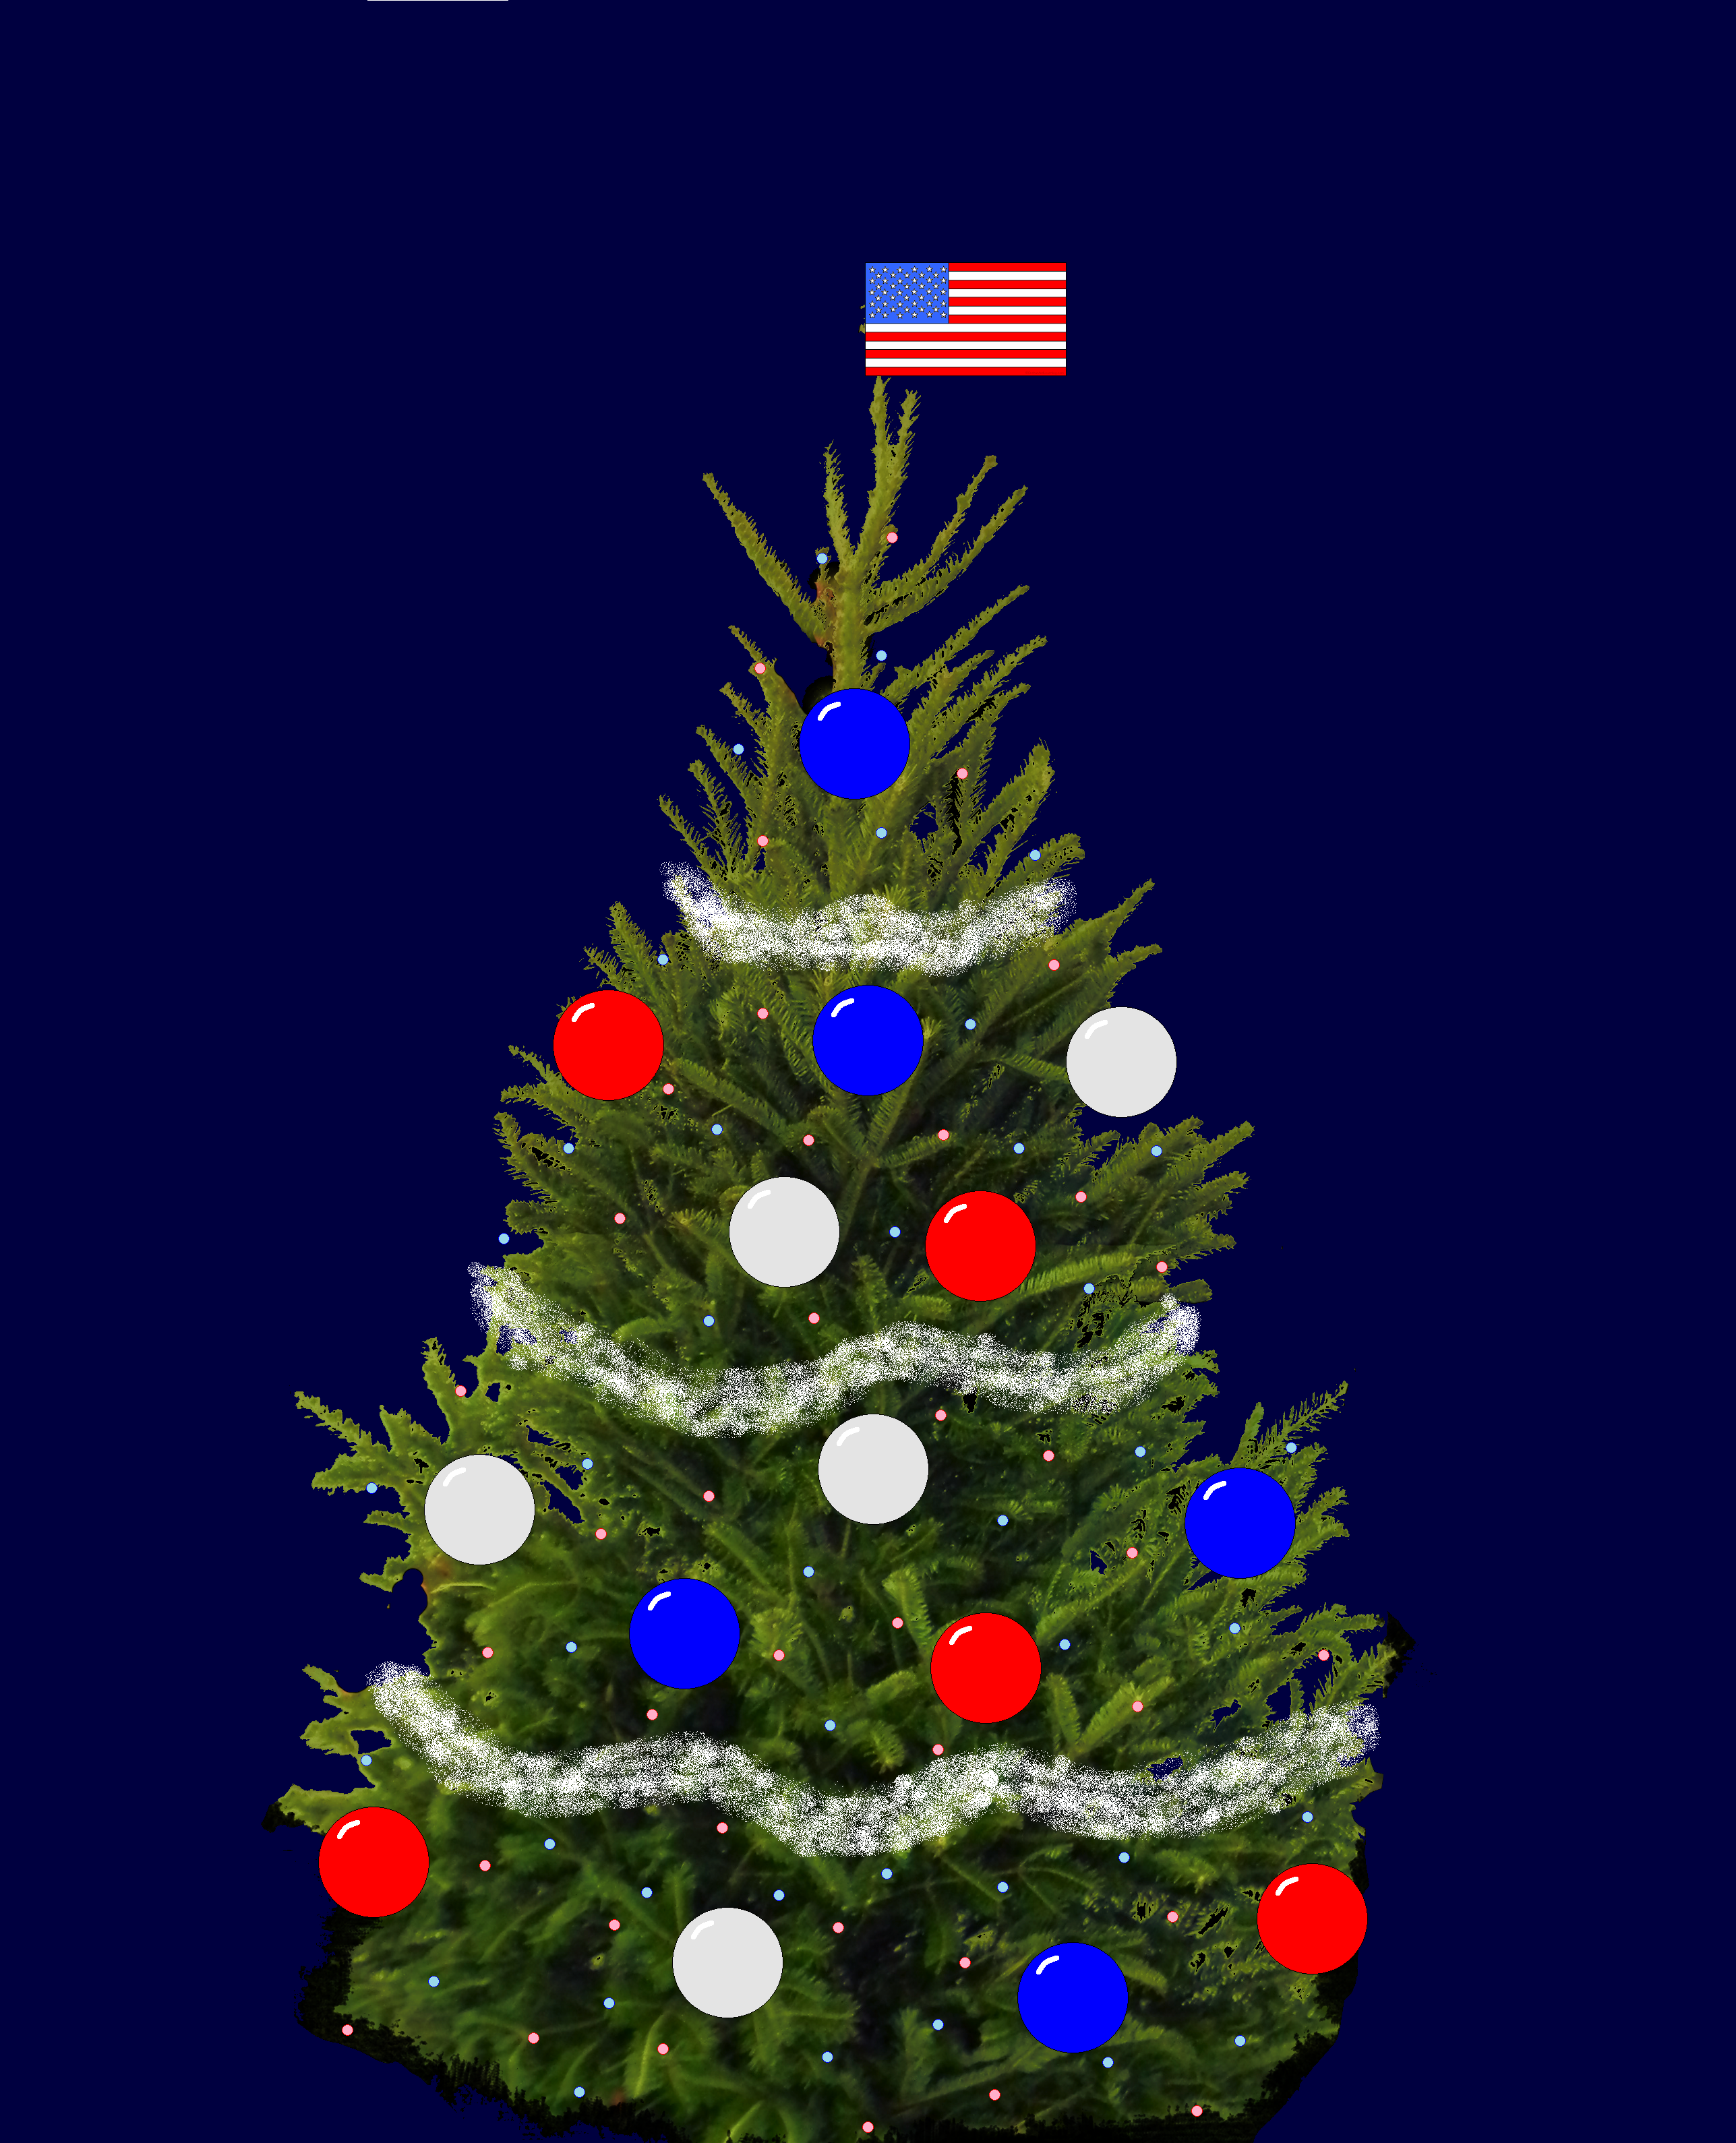 The American Flag Style For This Tree With Red White And Blue Lights And Ornaments With A Flag As A Topper American Flag Fashion Christmas Tree Tree